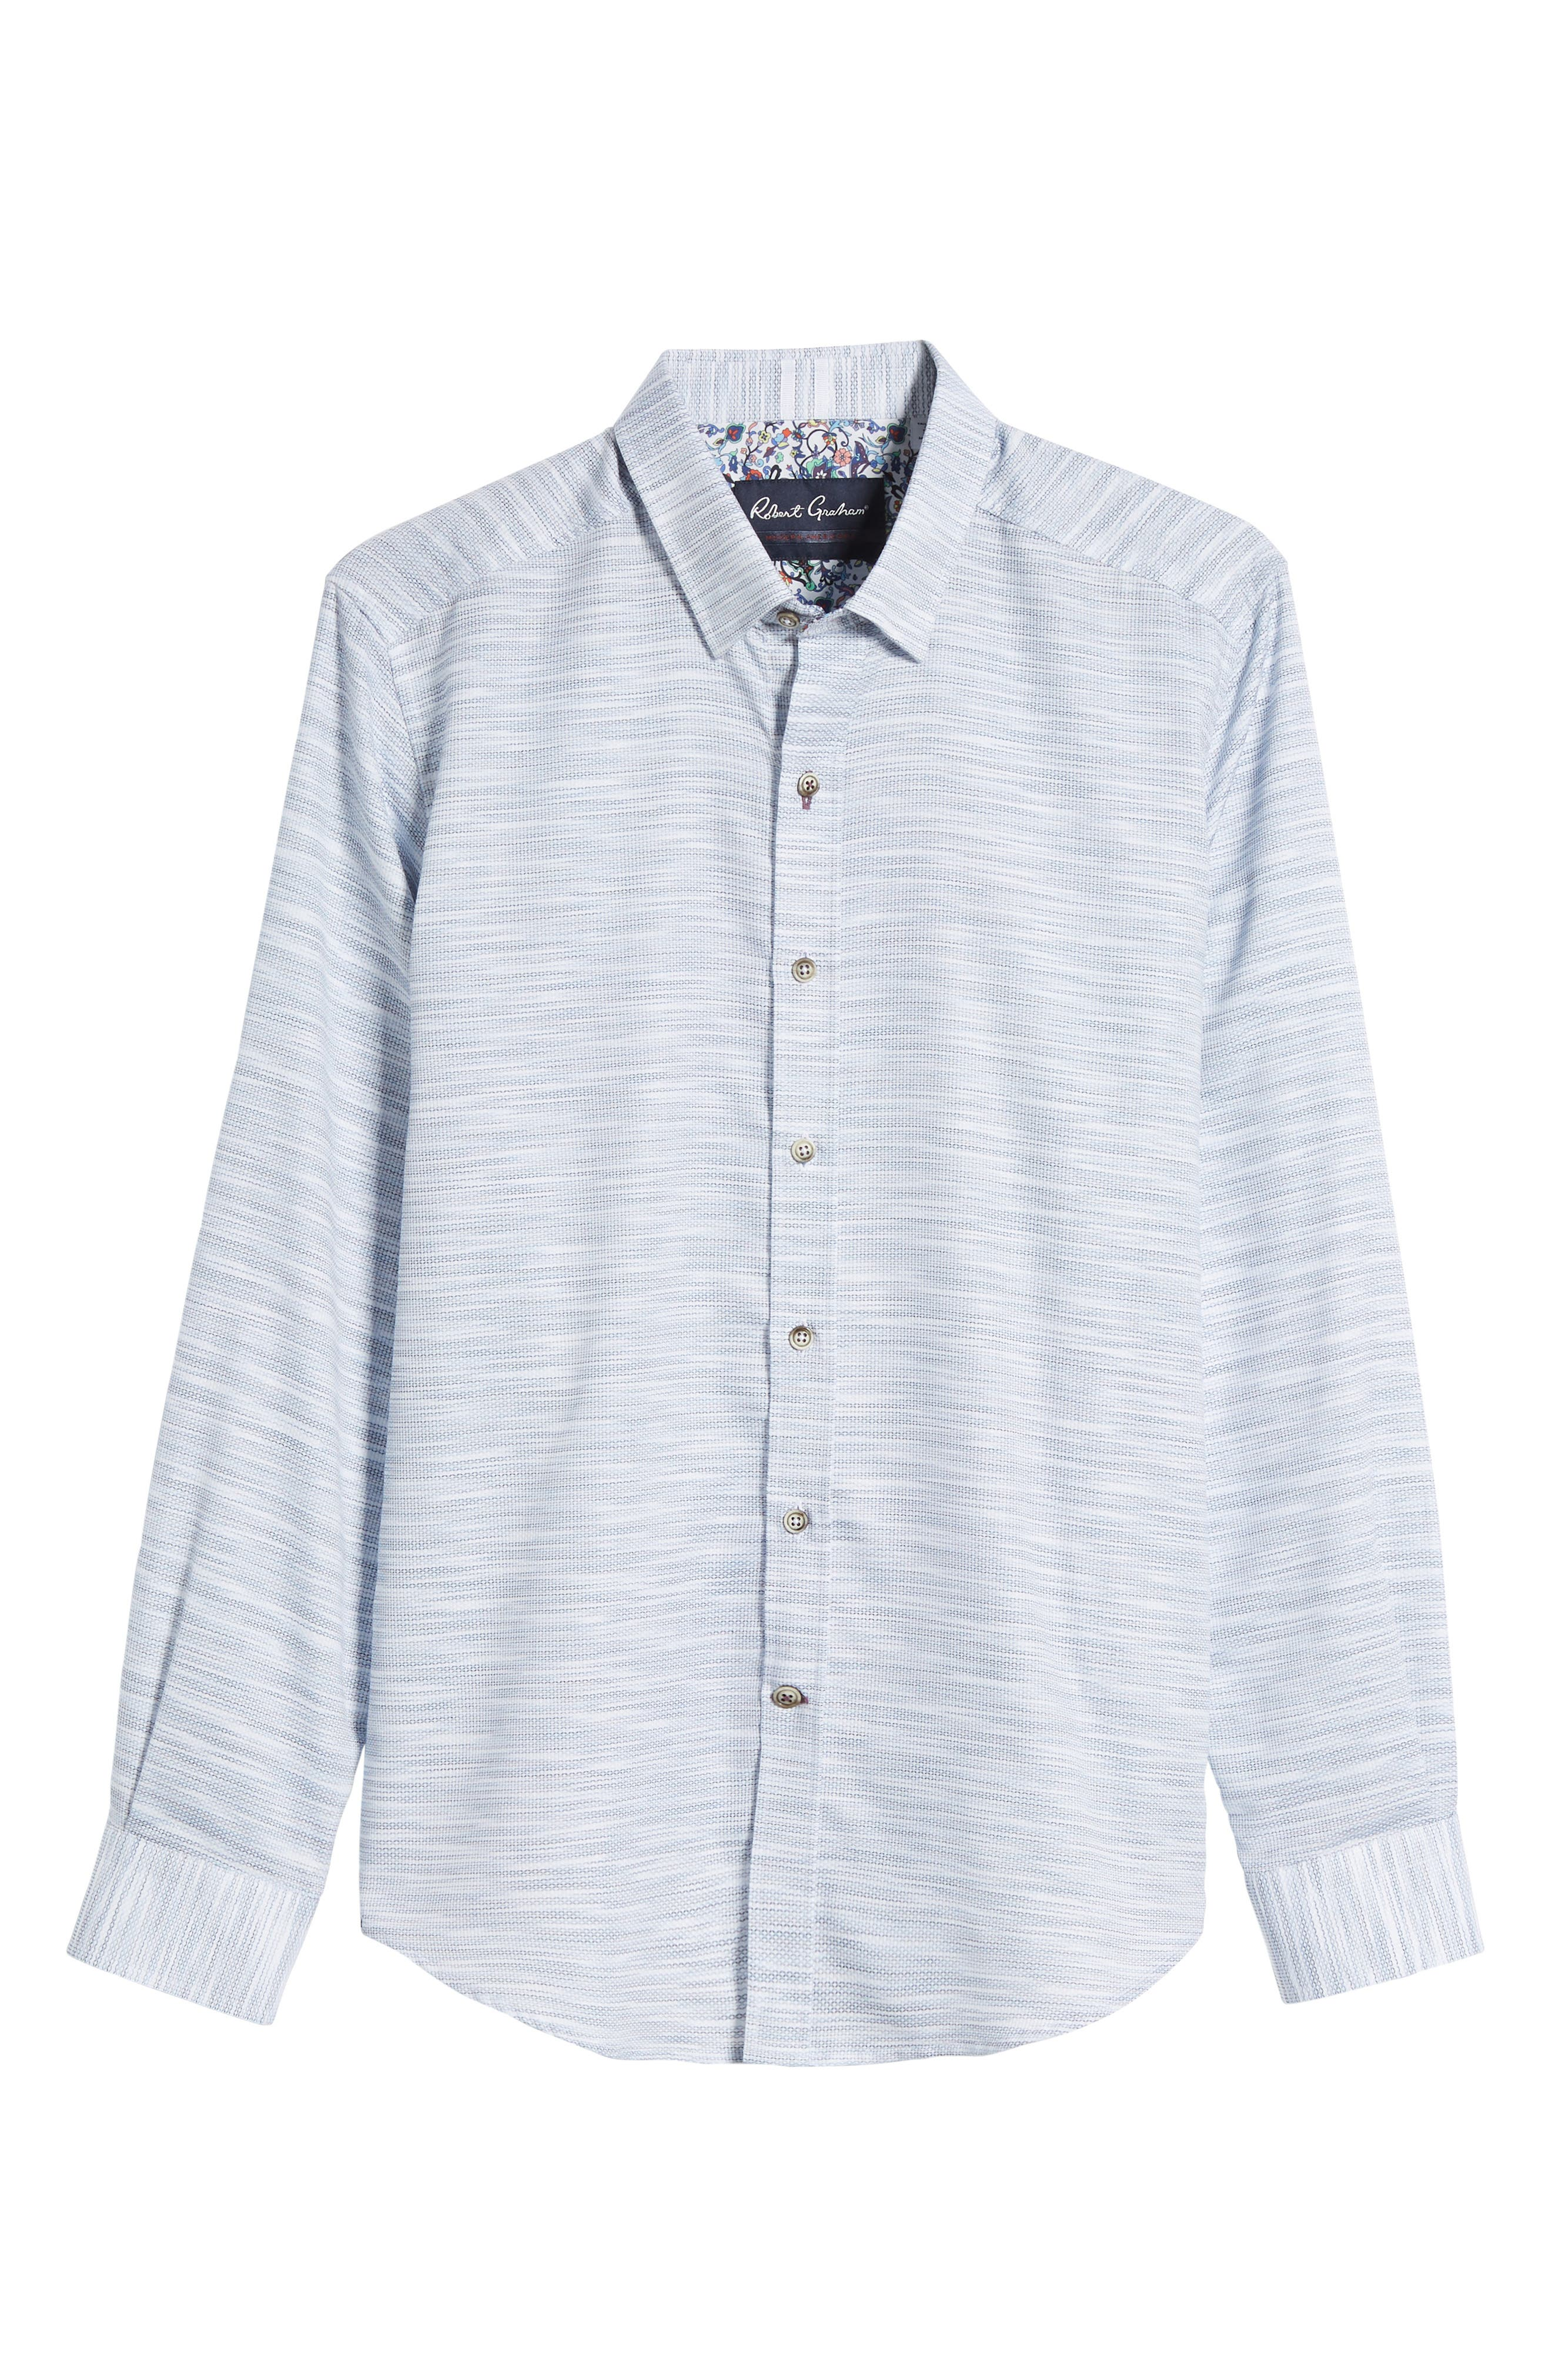 Tully Tailored Fit Sport Shirt,                             Alternate thumbnail 6, color,                             100